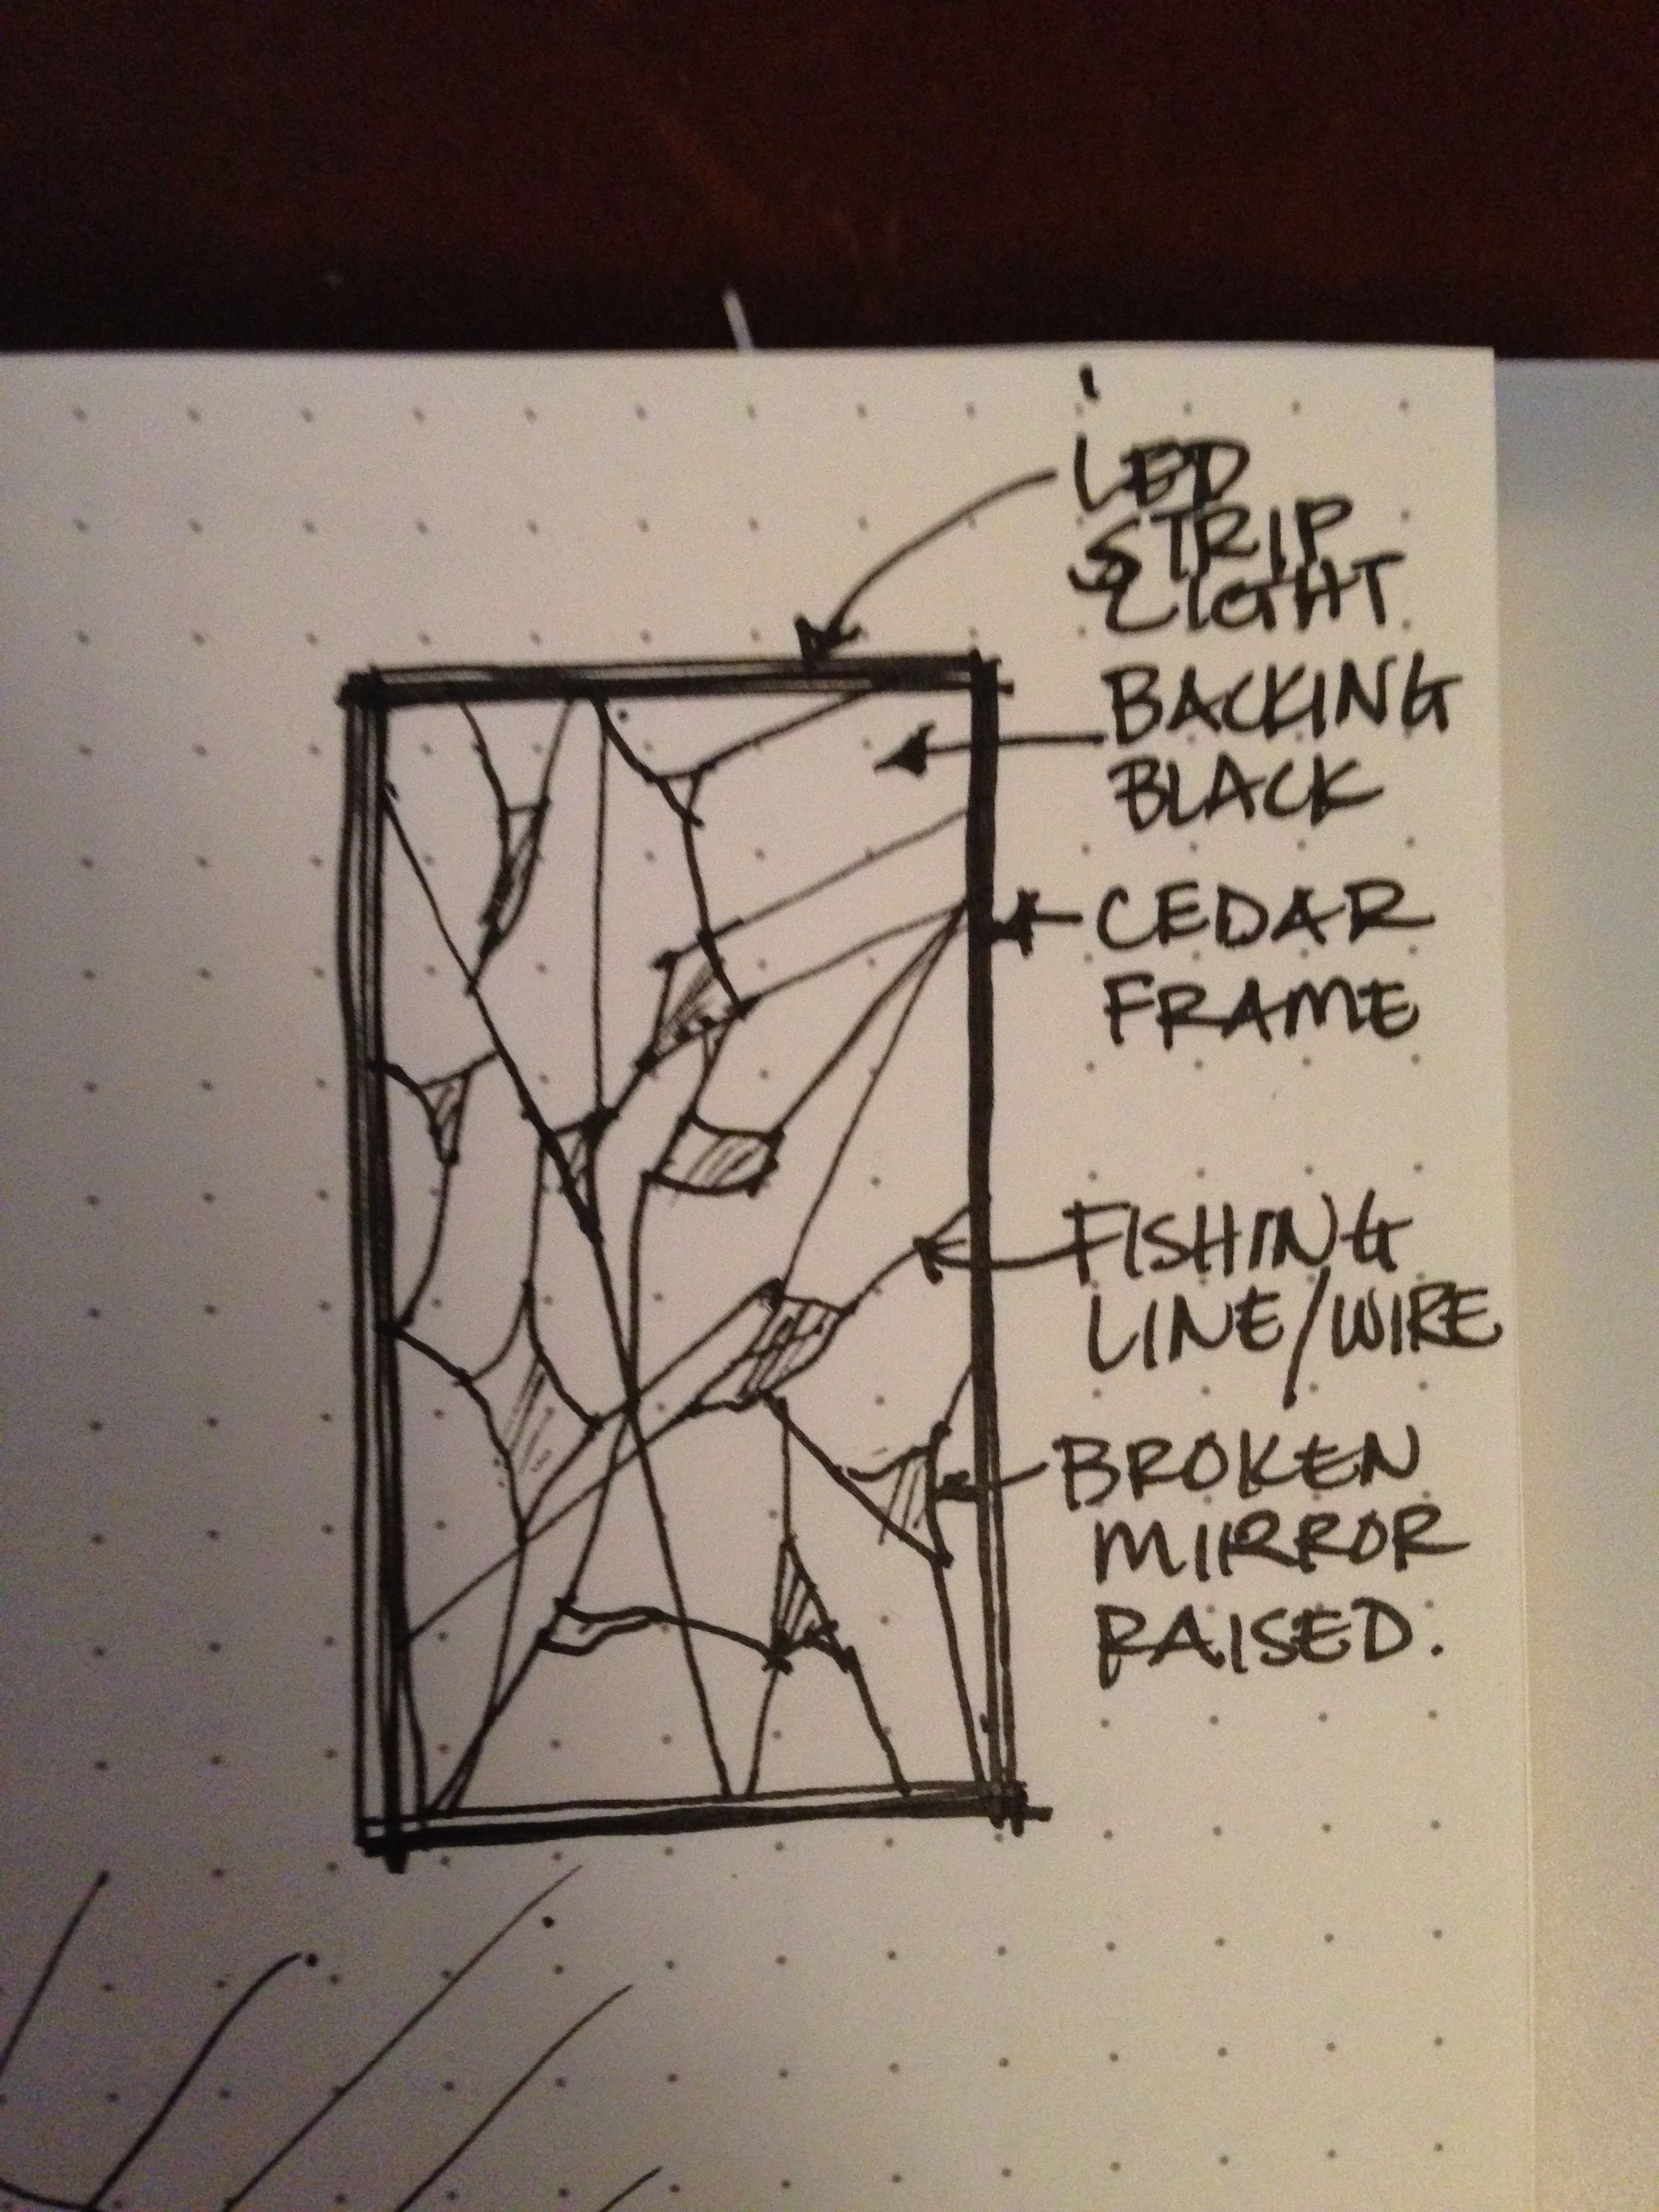 . We can ask Luke to build the frame and backing for us?  See if he has any mdf left over from a job?  . Mirror pieces to be built up as if they're floating...  . fishing line can be mounted by sandwiching between the mirror and substrate . maybe point source for light would be better...